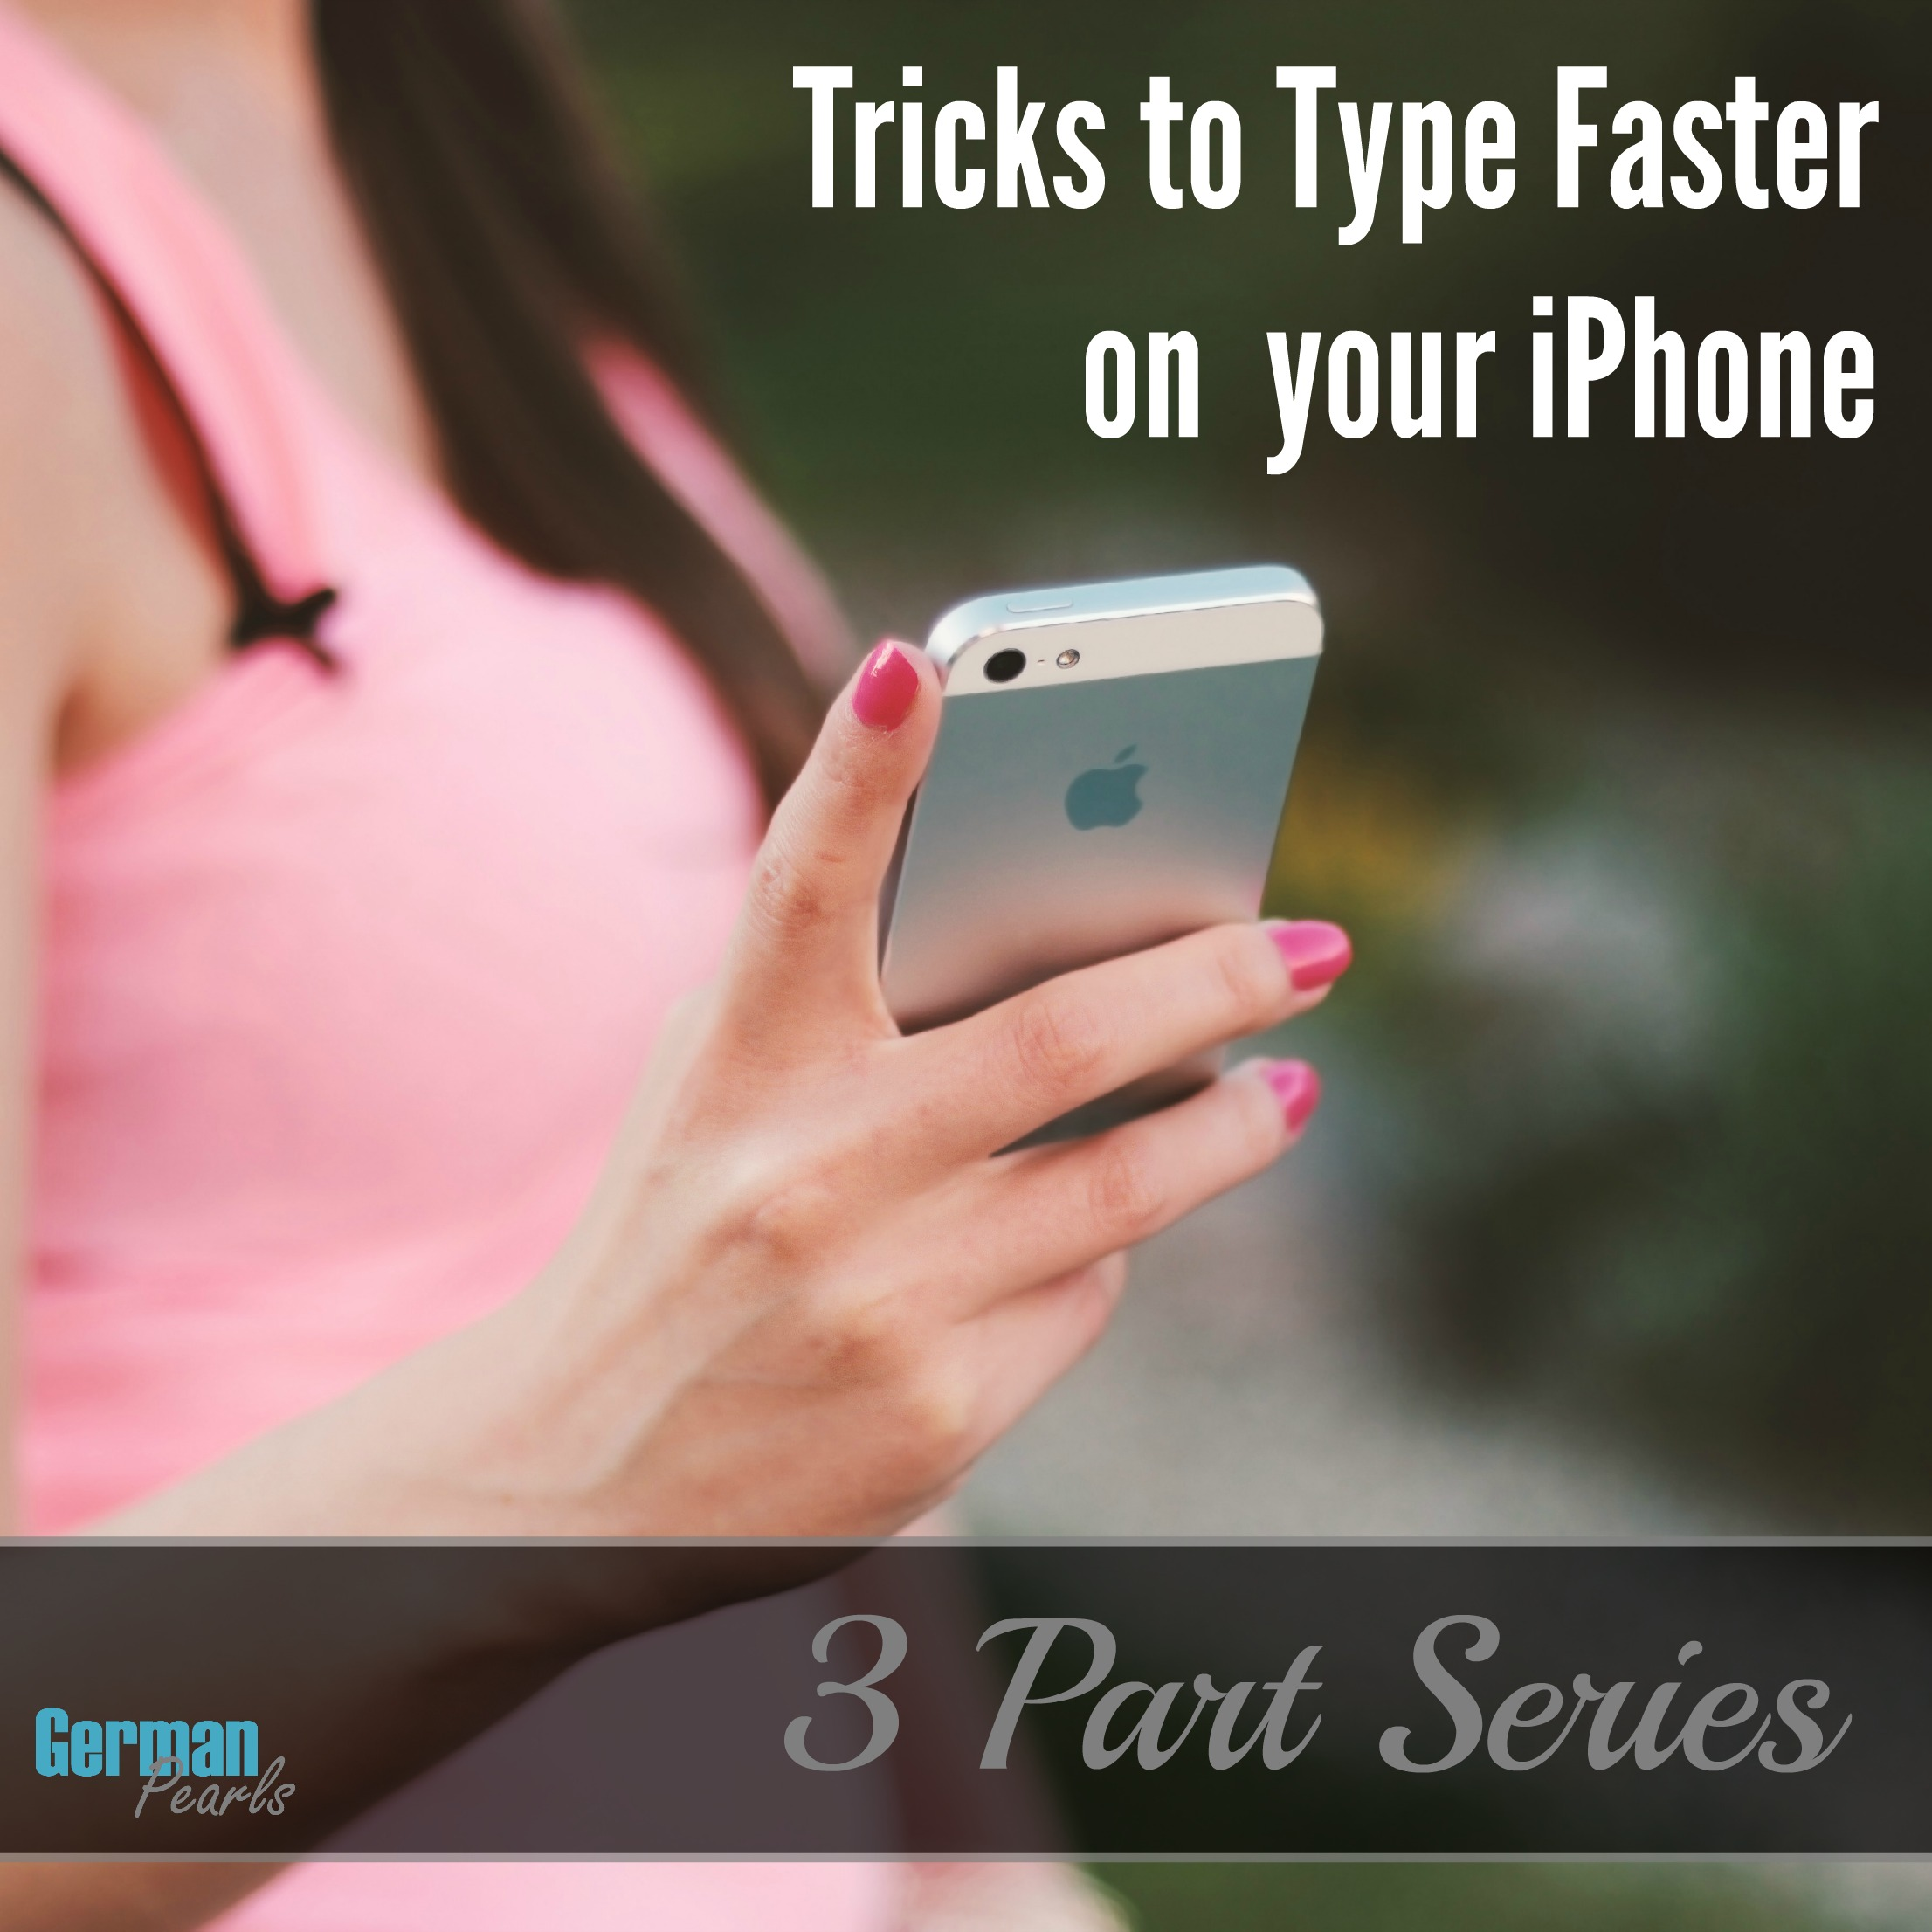 A 3 Part Series To Faster Typing On